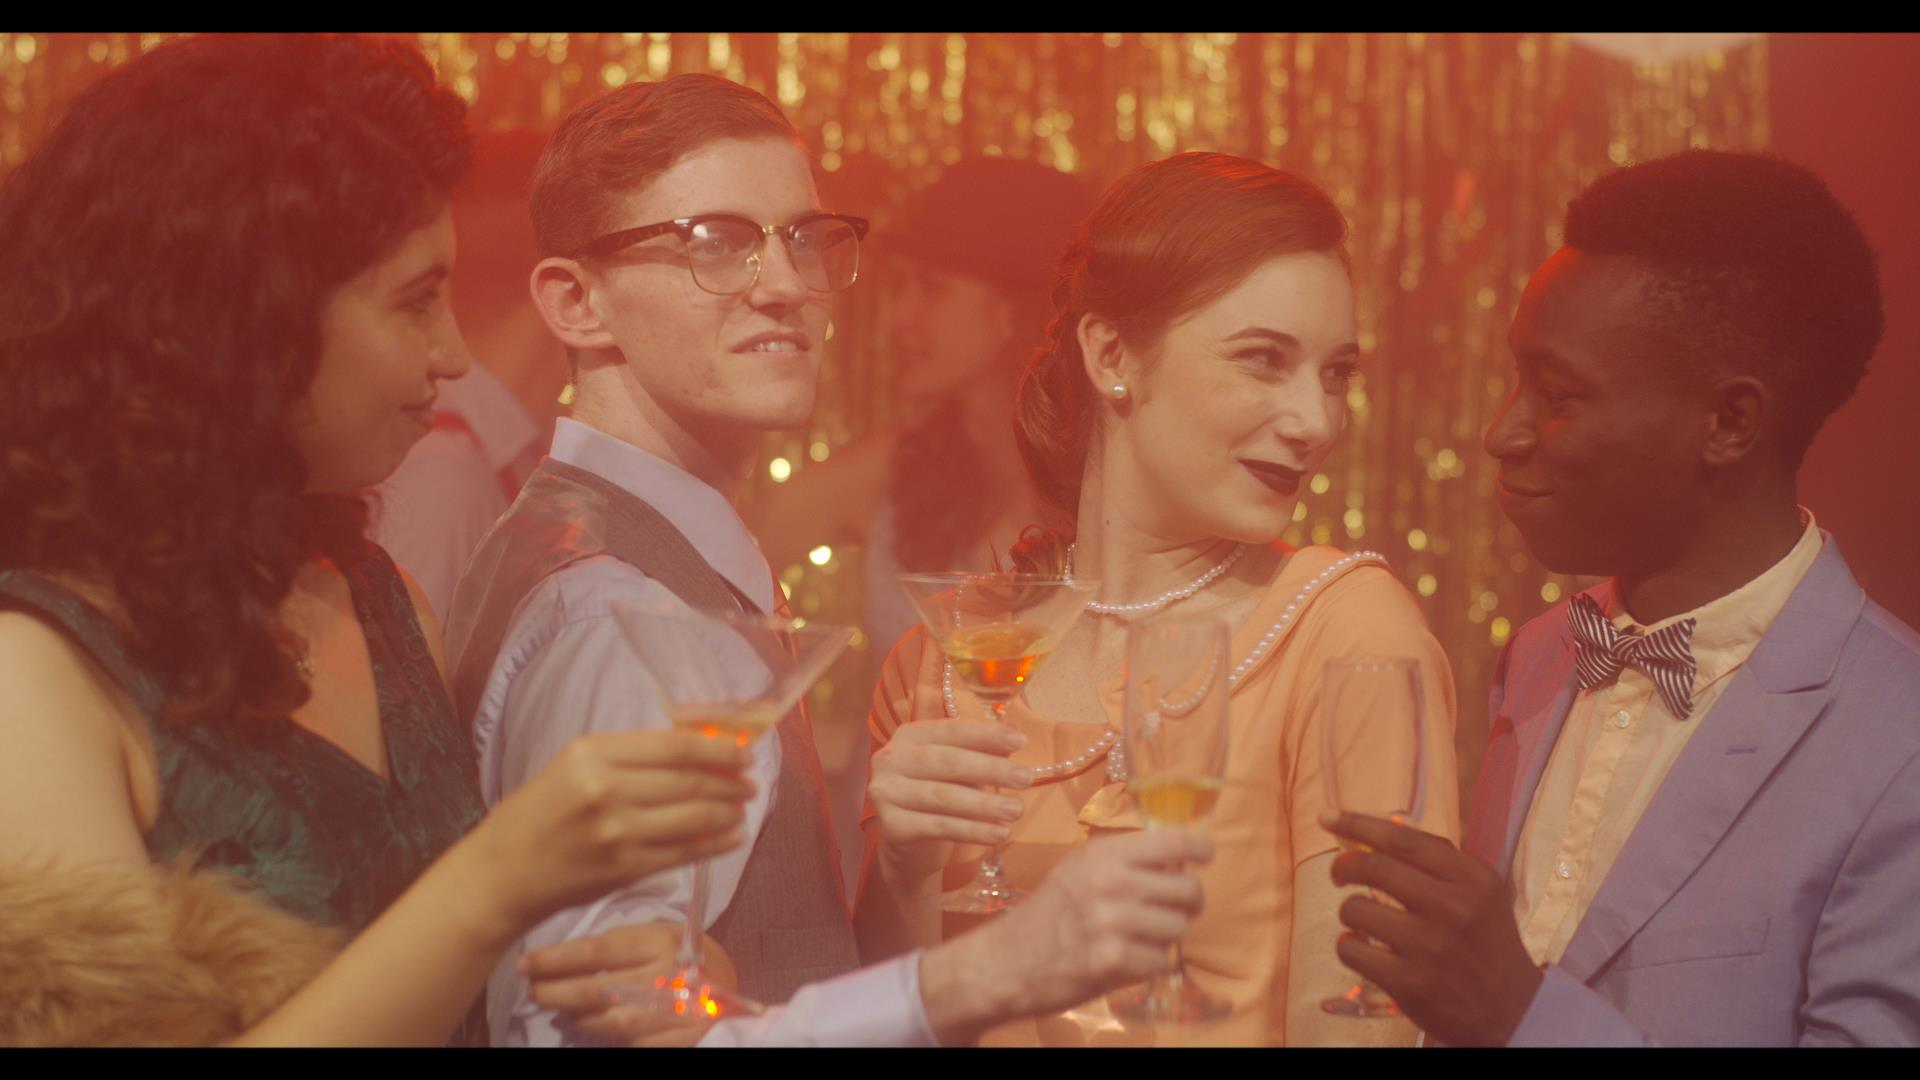 Olly Sholotan, Emily Beltran, Nicolette Norgaard, and Michael Riskin in Partying with Communists (2018)